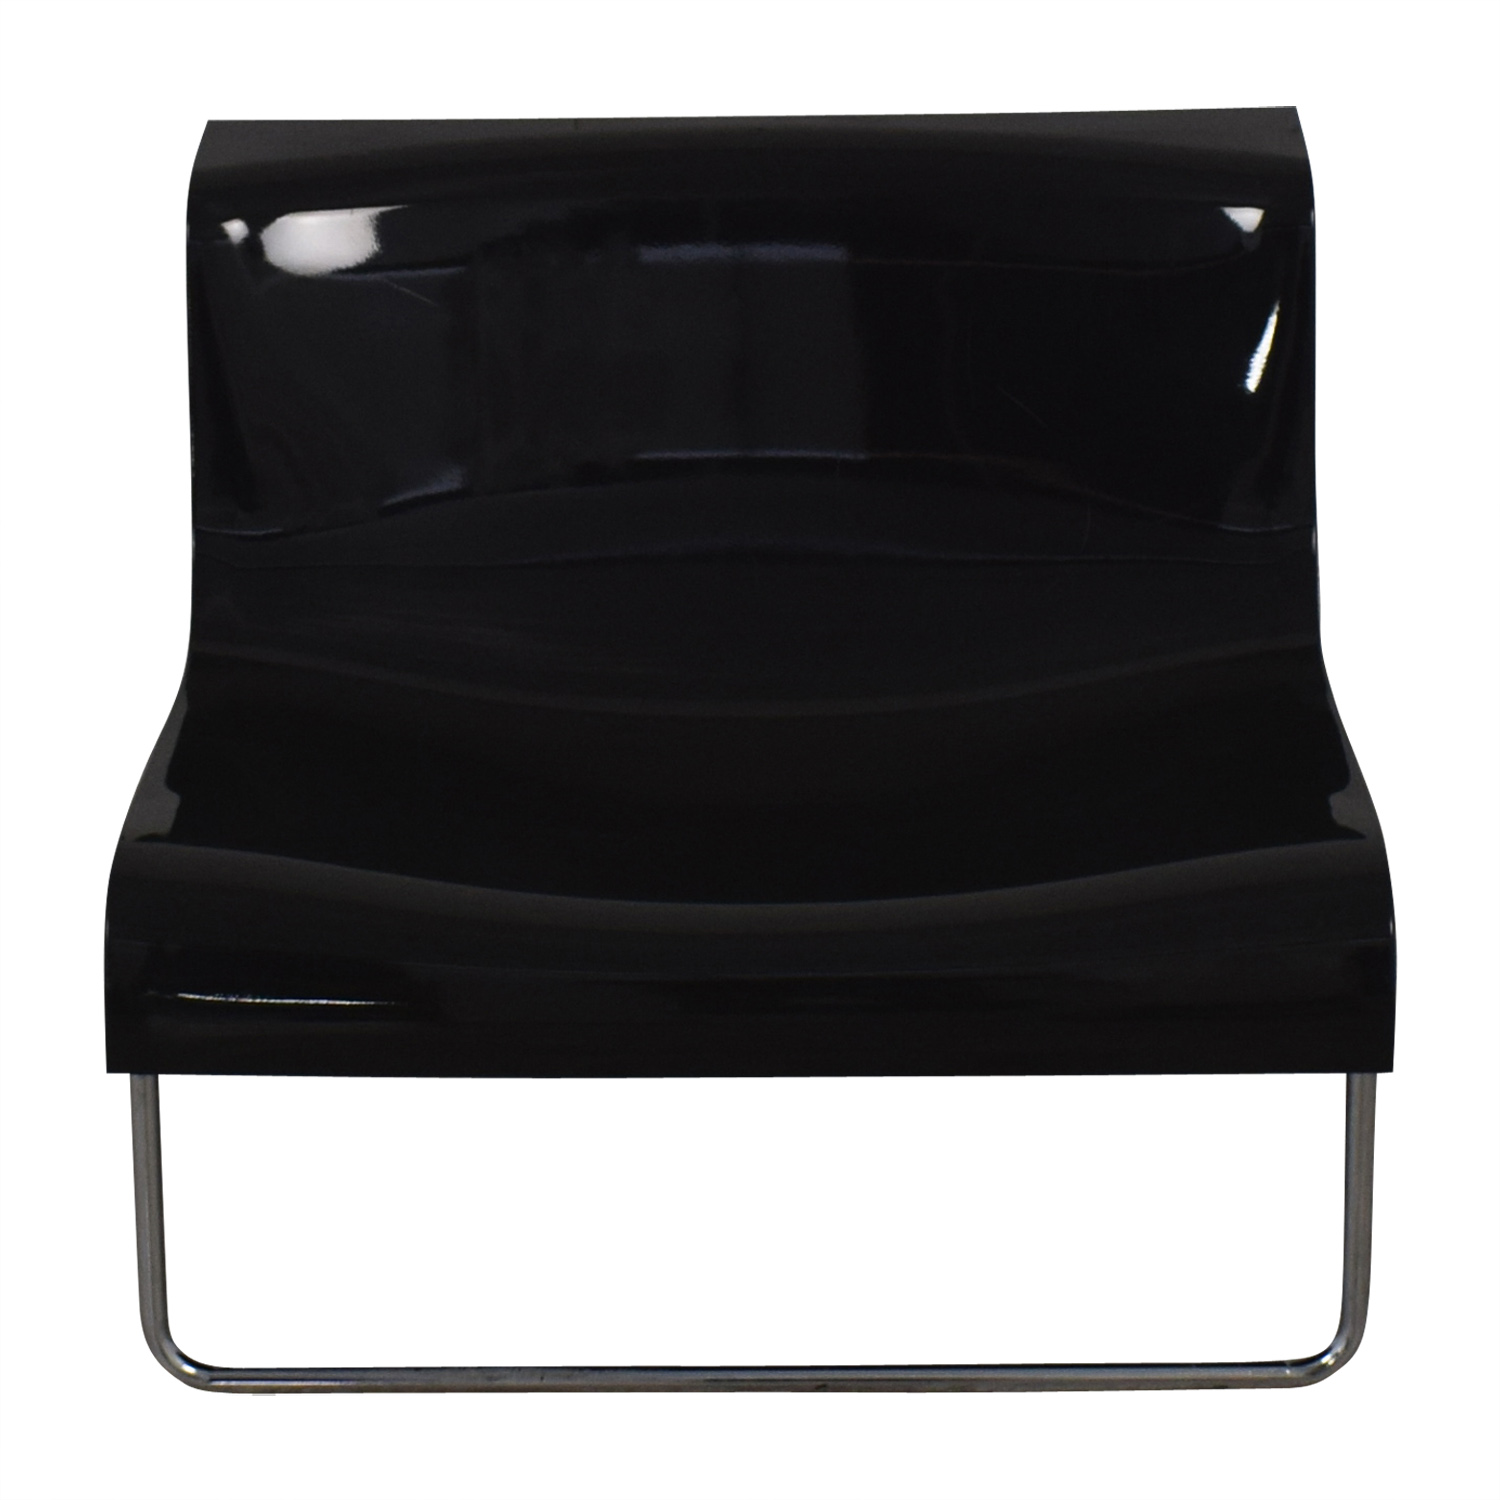 Kartell Kartell Form Chair by Piero Lissoni dimensions